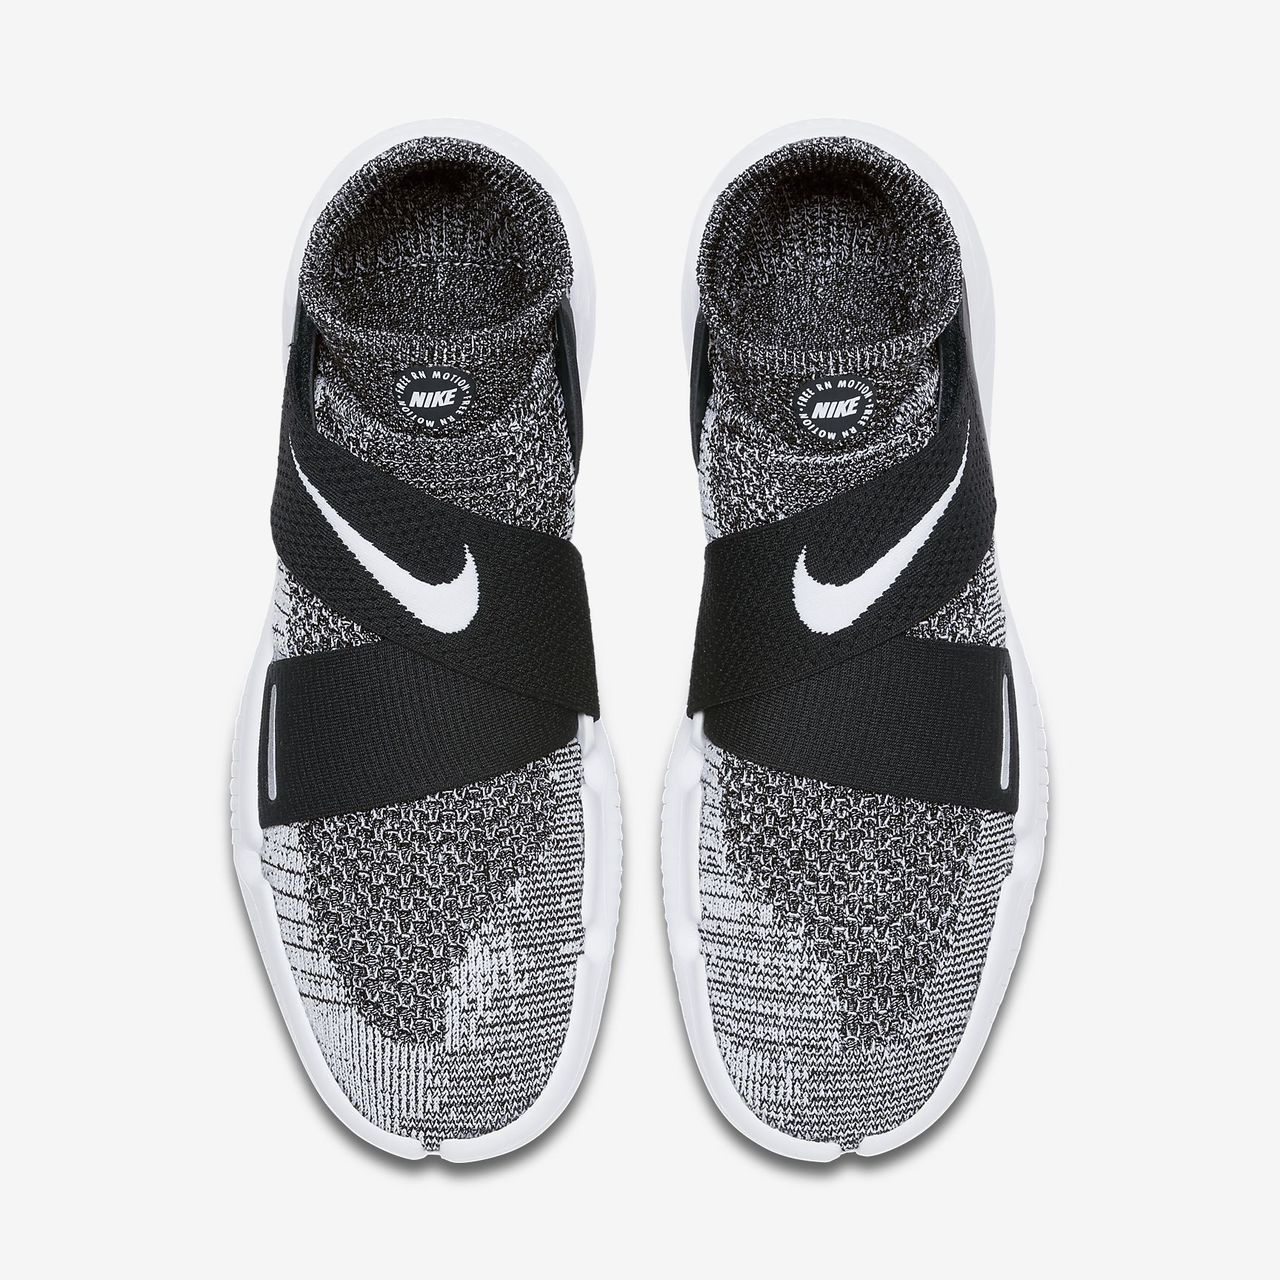 Nike   Free RN Motion Flyknit 2018   Black White   Shoes   2018 Shop ... 318e8733625